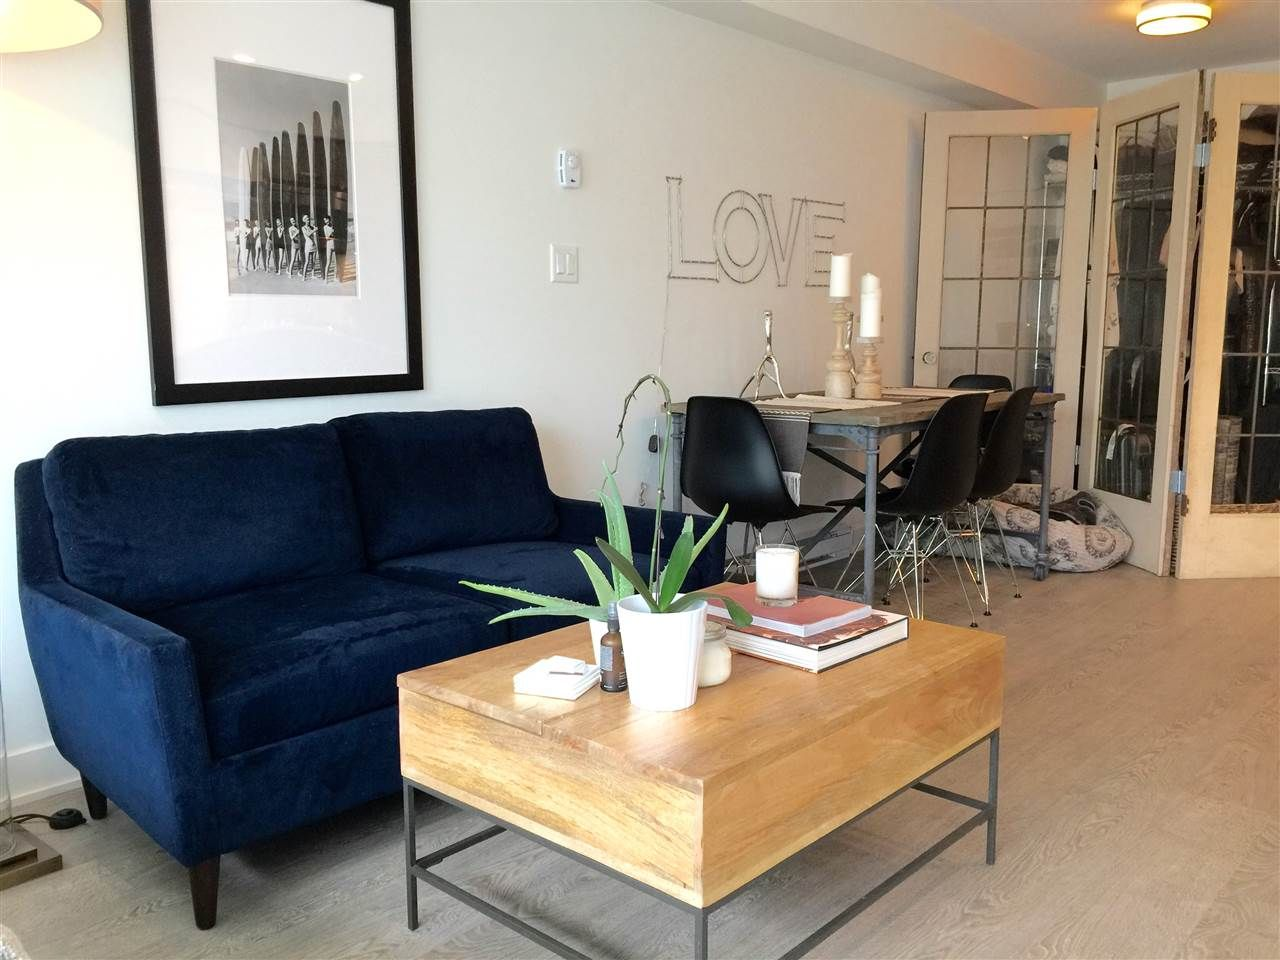 """Photo 5: Photos: 202 2858 W 4TH Avenue in Vancouver: Kitsilano Condo for sale in """"Kits West"""" (Vancouver West)  : MLS®# R2085977"""